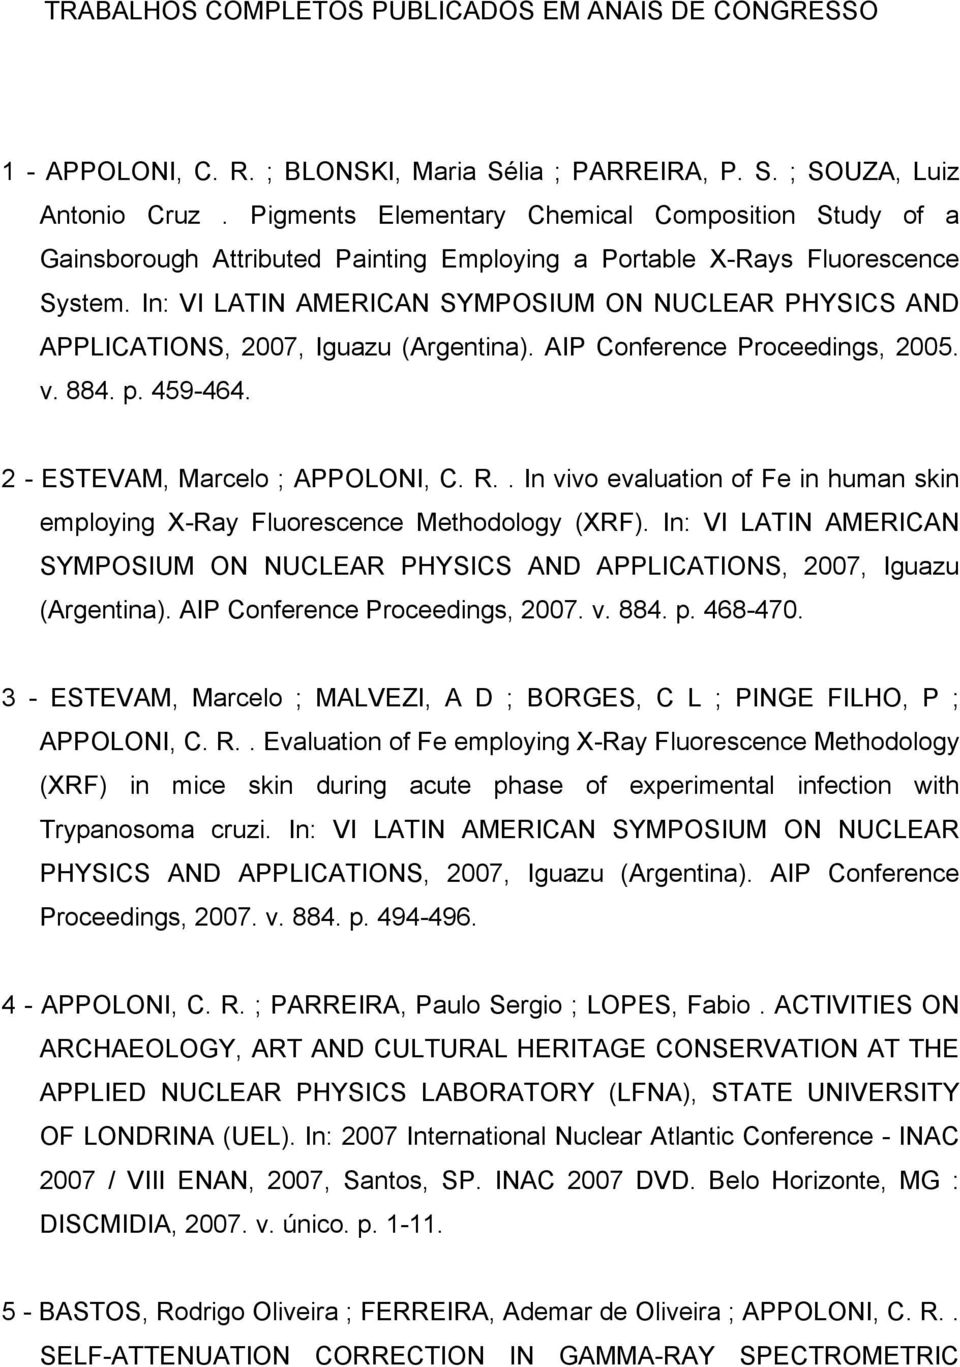 In: VI LATIN AMERICAN SYMPOSIUM ON NUCLEAR PHYSICS AND APPLICATIONS, 2007, Iguazu (Argentina). AIP Conference Proceedings, 2005. v. 884. p. 459-464. 2 - ESTEVAM, Marcelo ; APPOLONI, C. R.